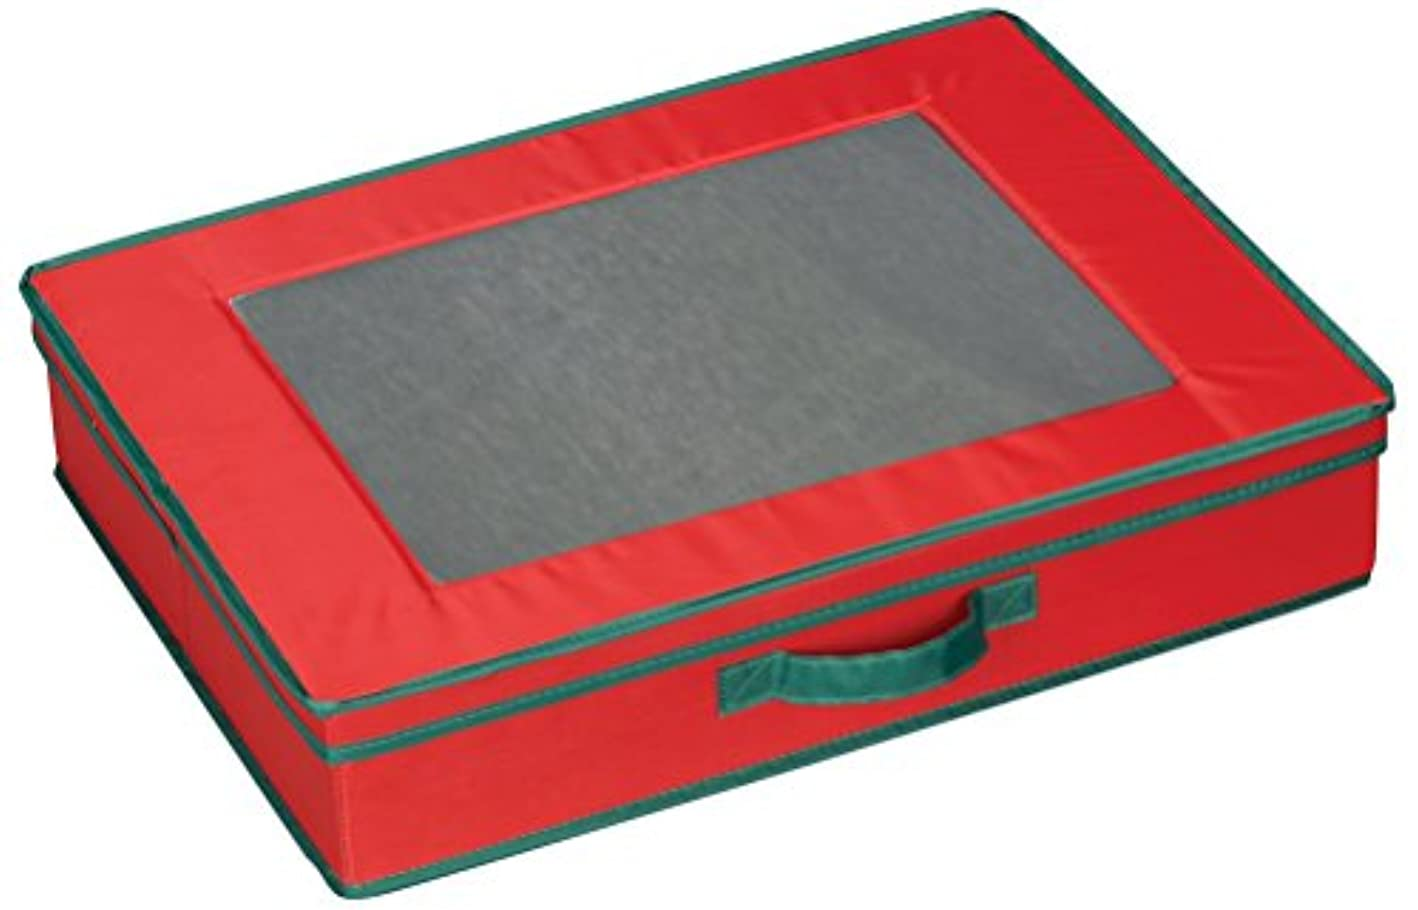 Household Essentials 545 Holiday Vision Storage Box with Lid and Handles | Tabletop Linen Storage Set | Red Canvas with Green Trim